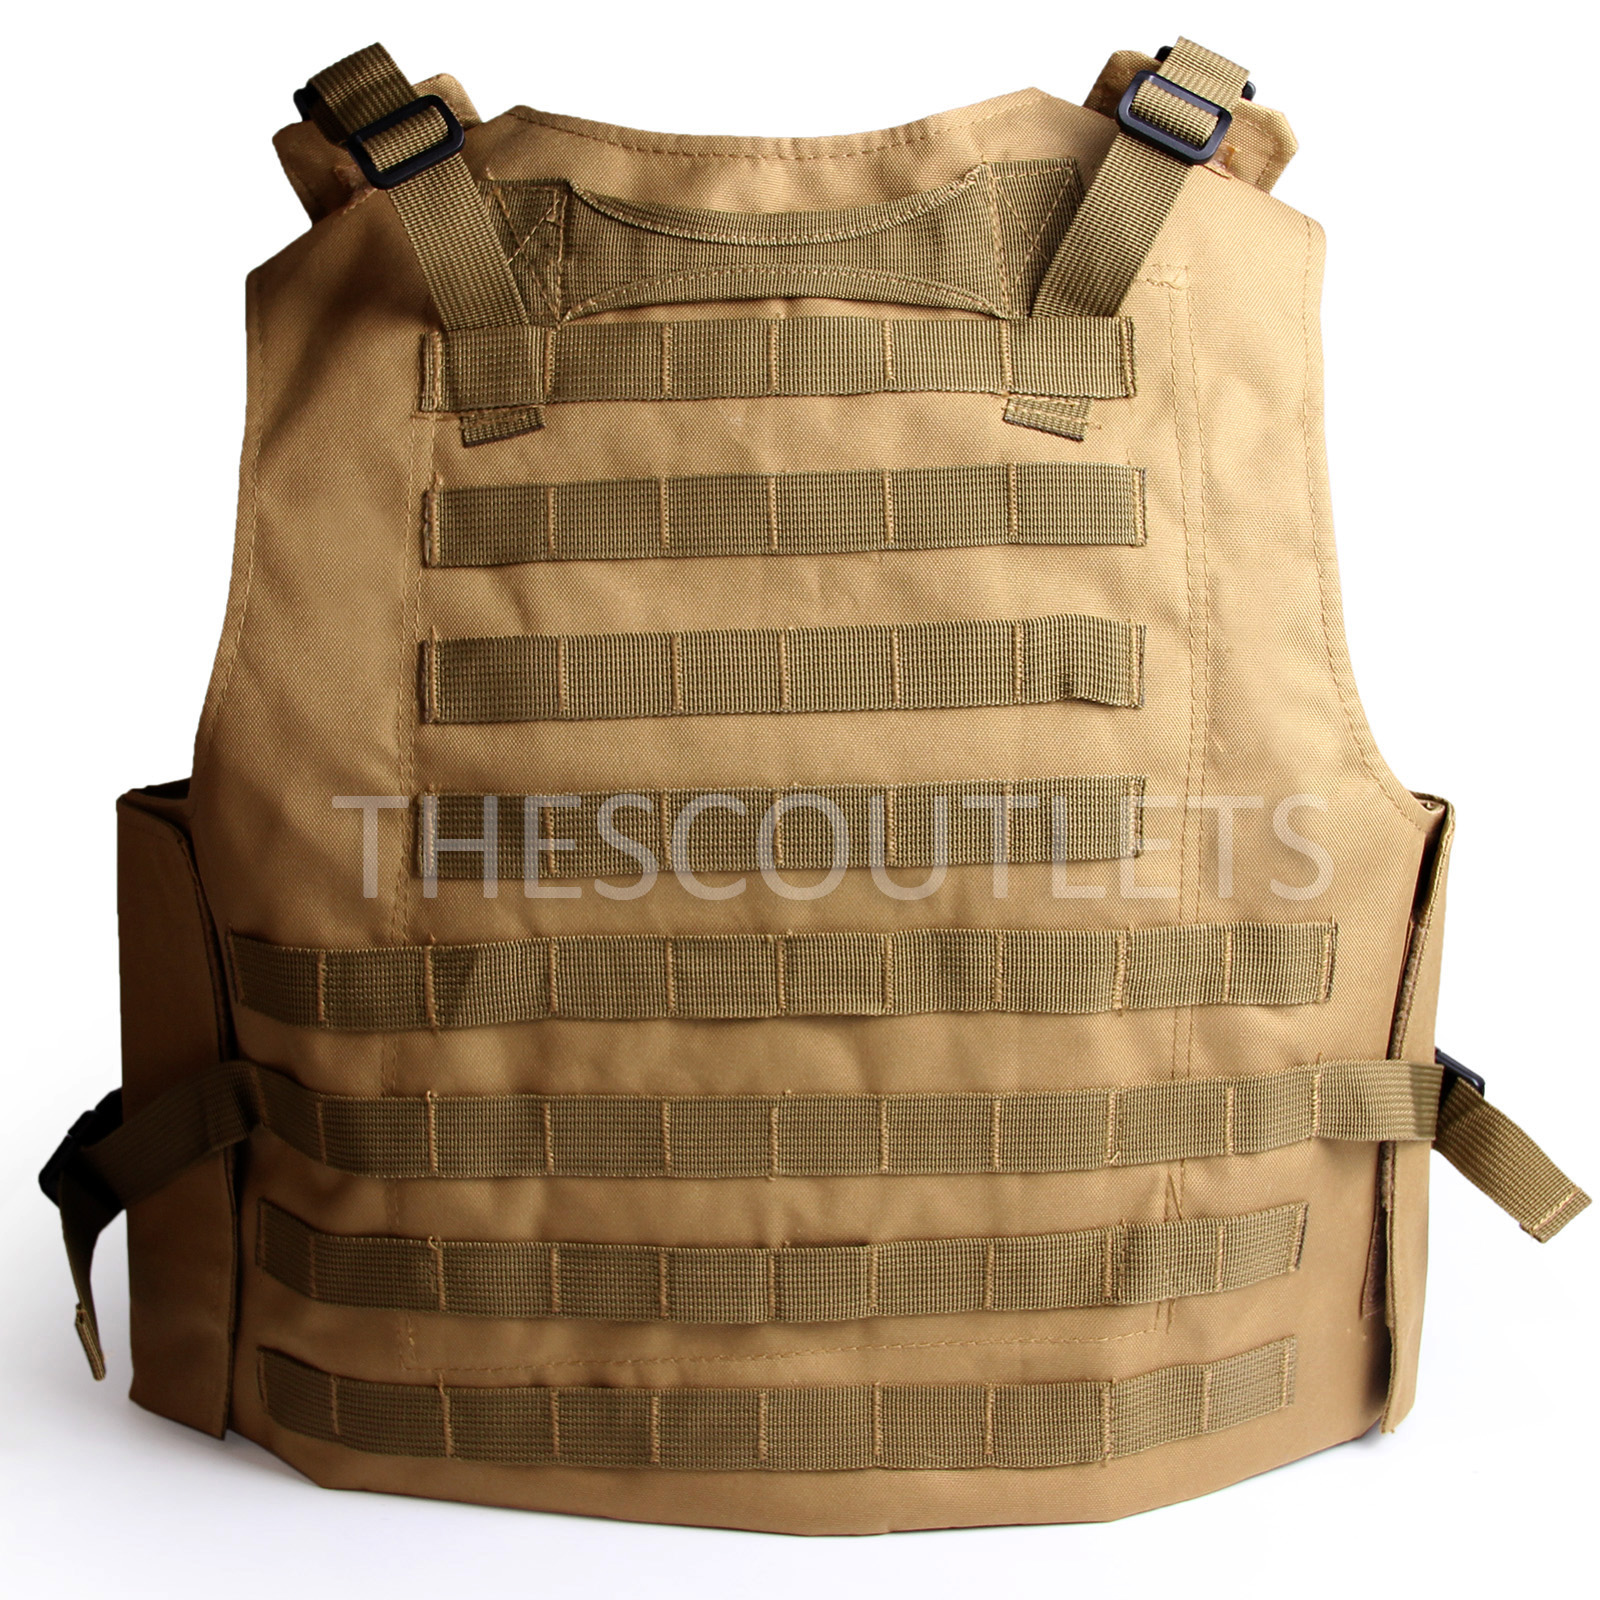 Military-Tactical-Paintball-Army-Molle-Carrier-Adjustable-Airsoft-Combat-Vest thumbnail 21